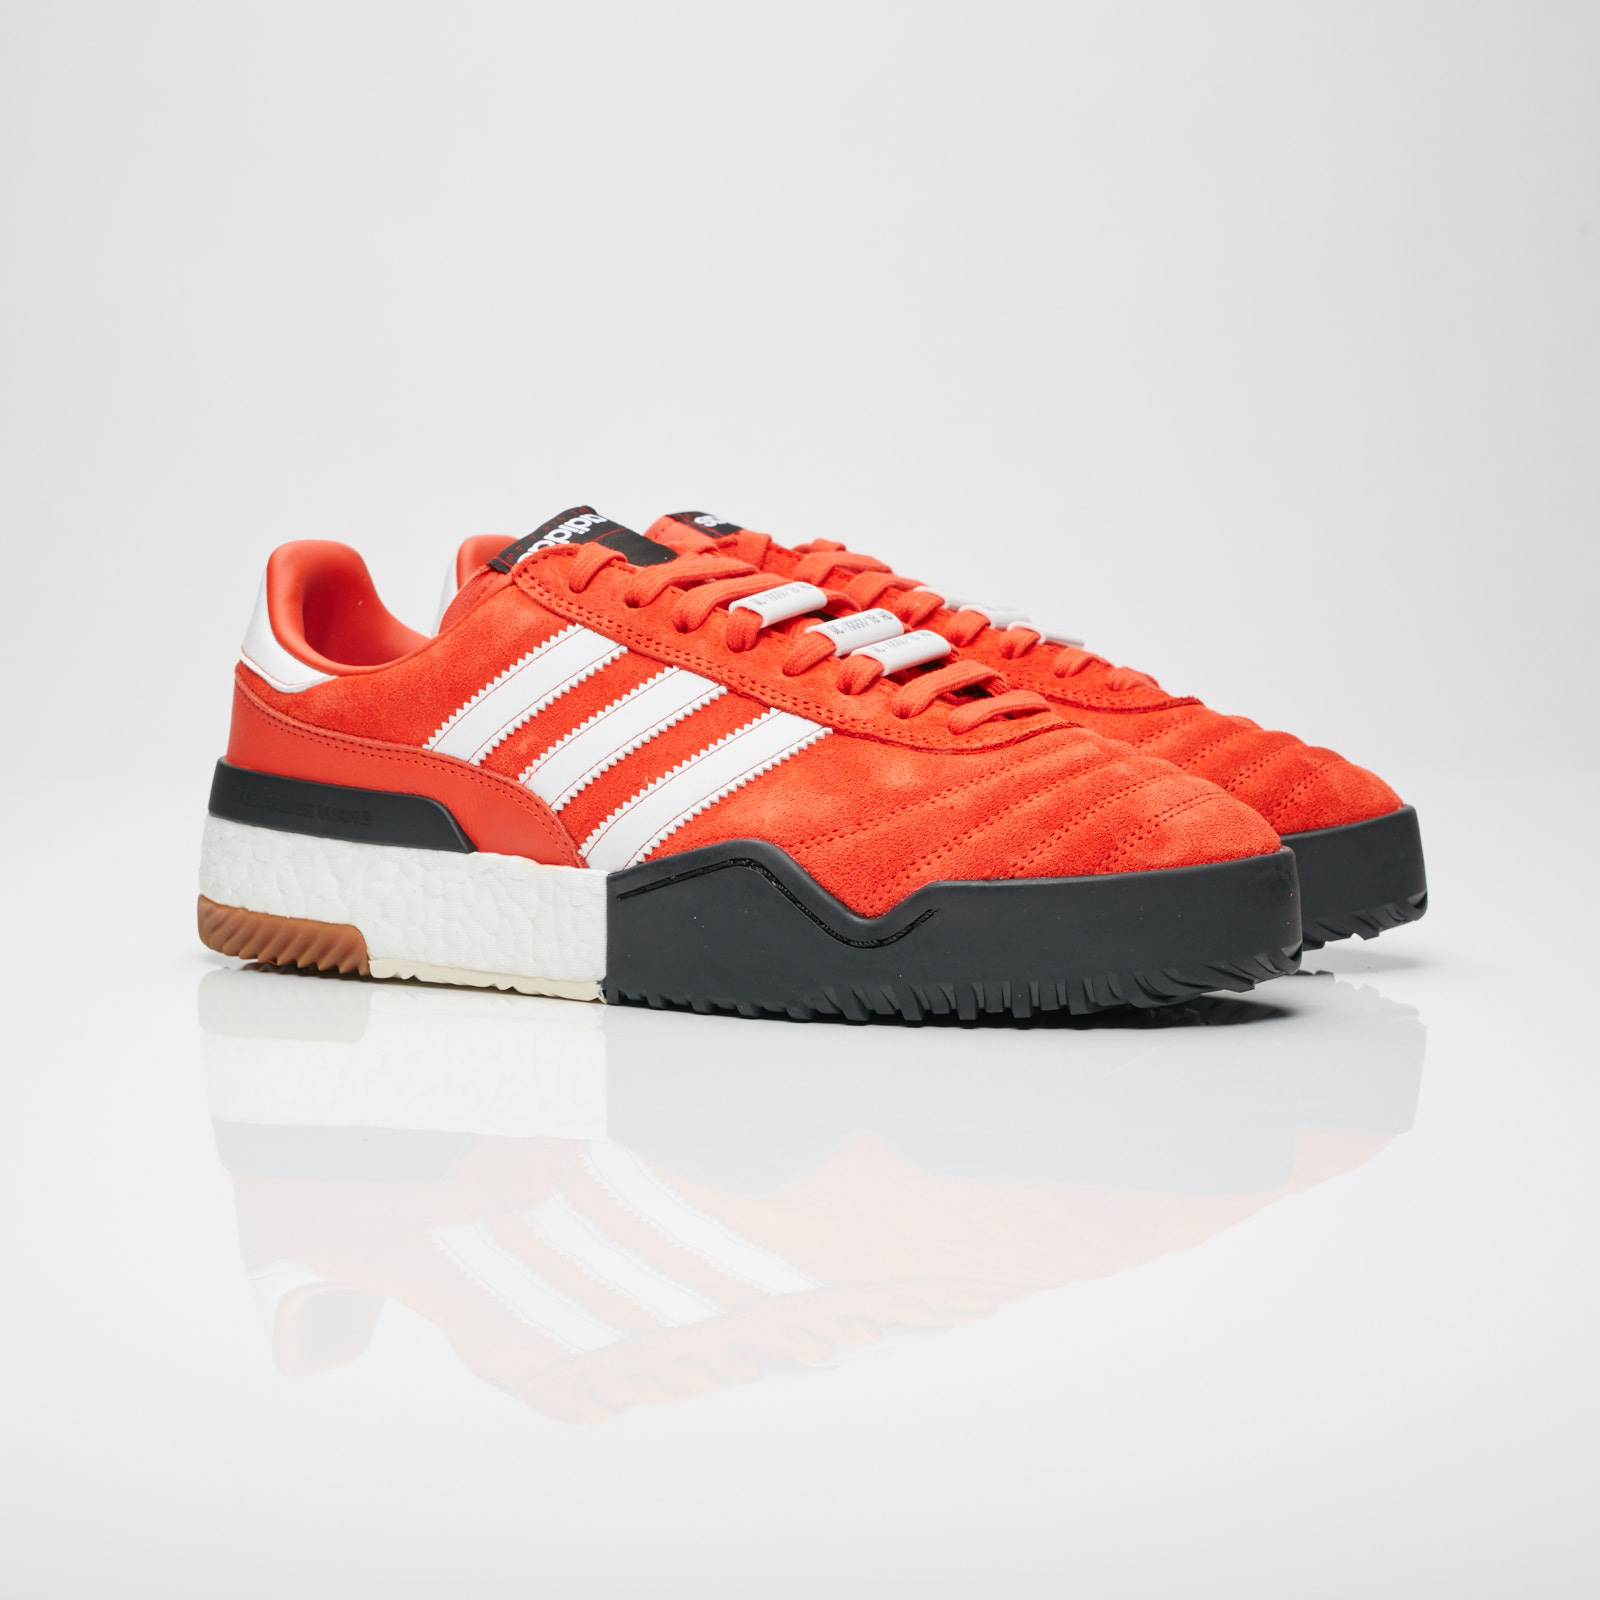 outlet store f632e 870dd adidas Originals by Alexander Wang Bball Soccer